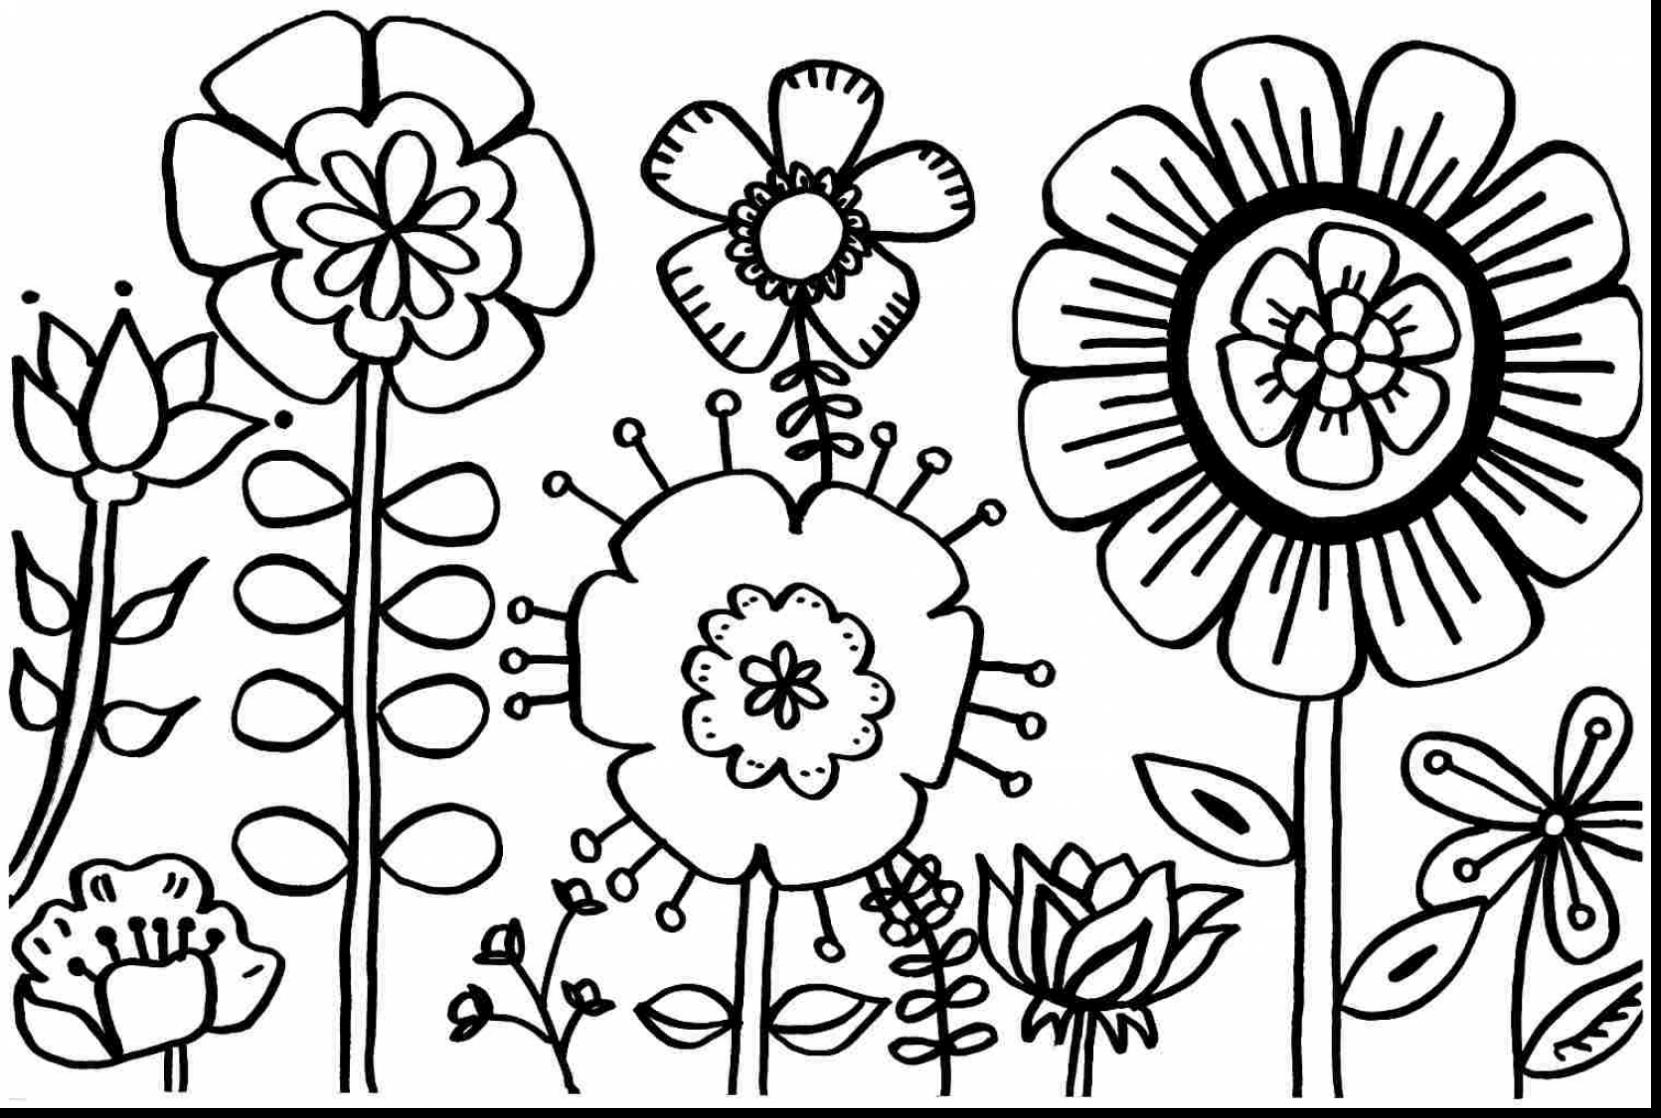 Cute spring clipart black and white black and white library Spring Flowers Clipart Black And White | Free download best ... black and white library